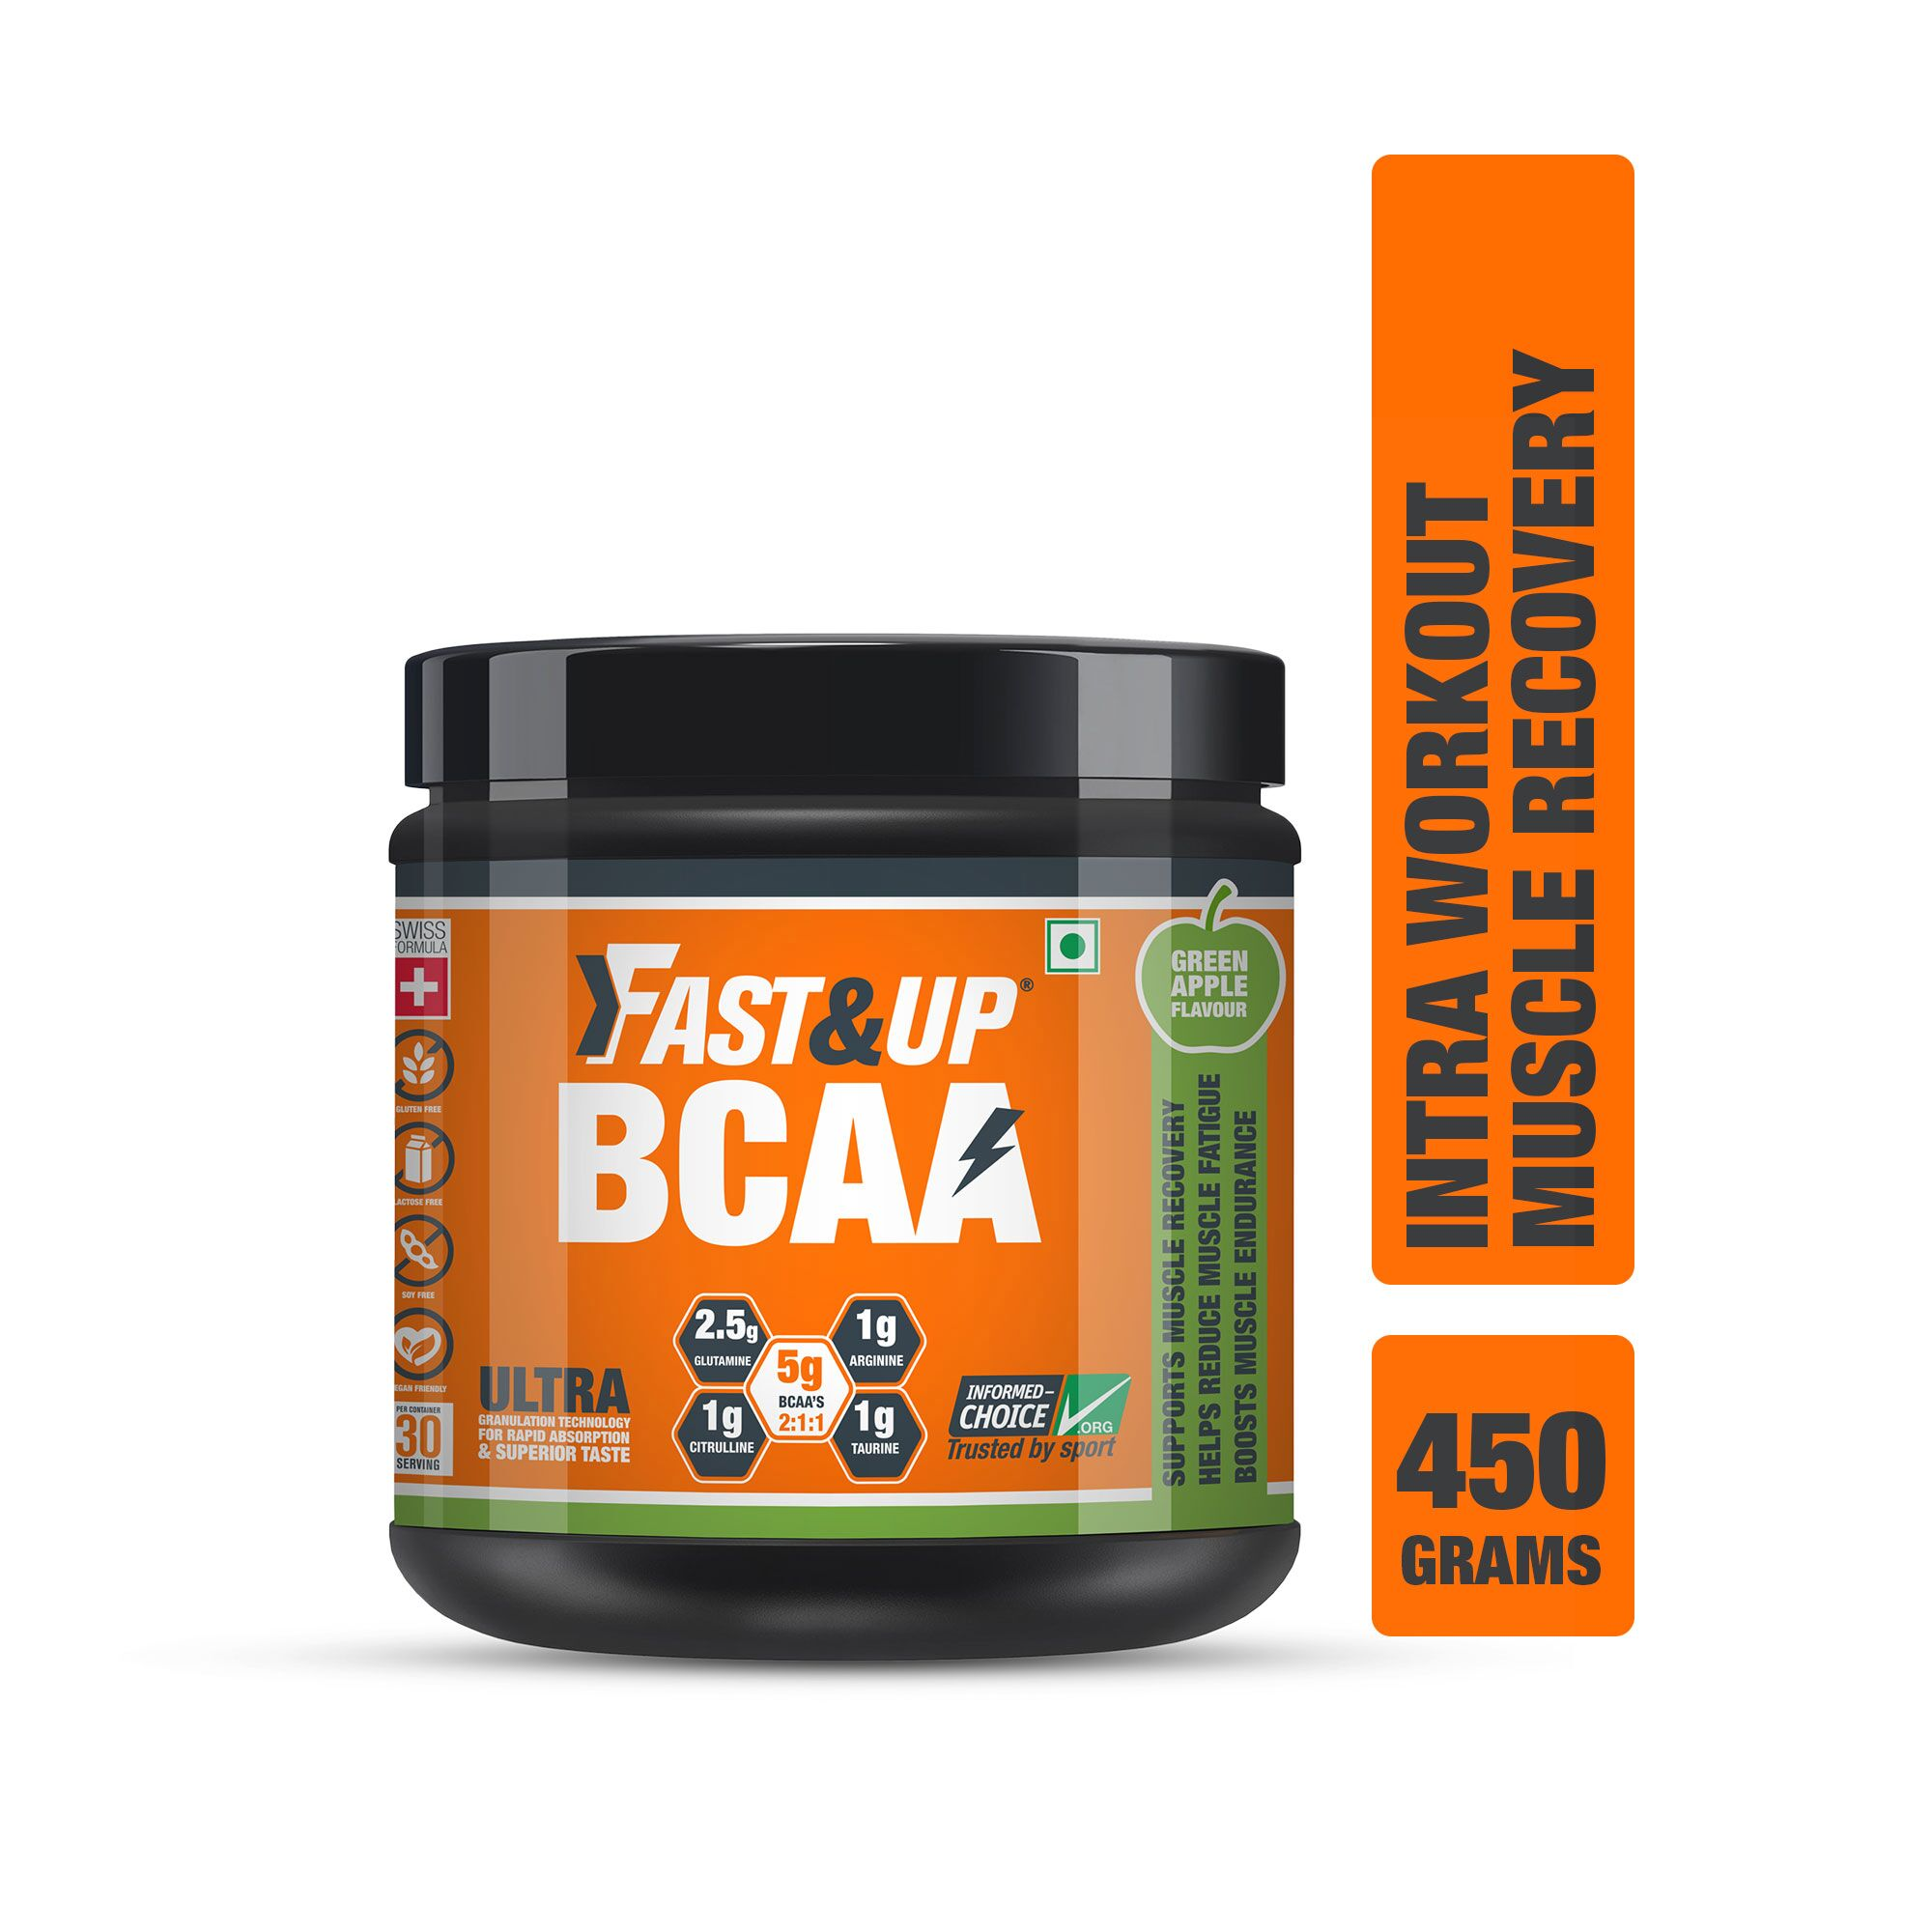 Fast&Up BCAA 2:1:1 For Pre/Intra/Post Workout With Arginine, Glutamine And Muscle Activation Boosters - 450 Gms - Green Apple Flavour